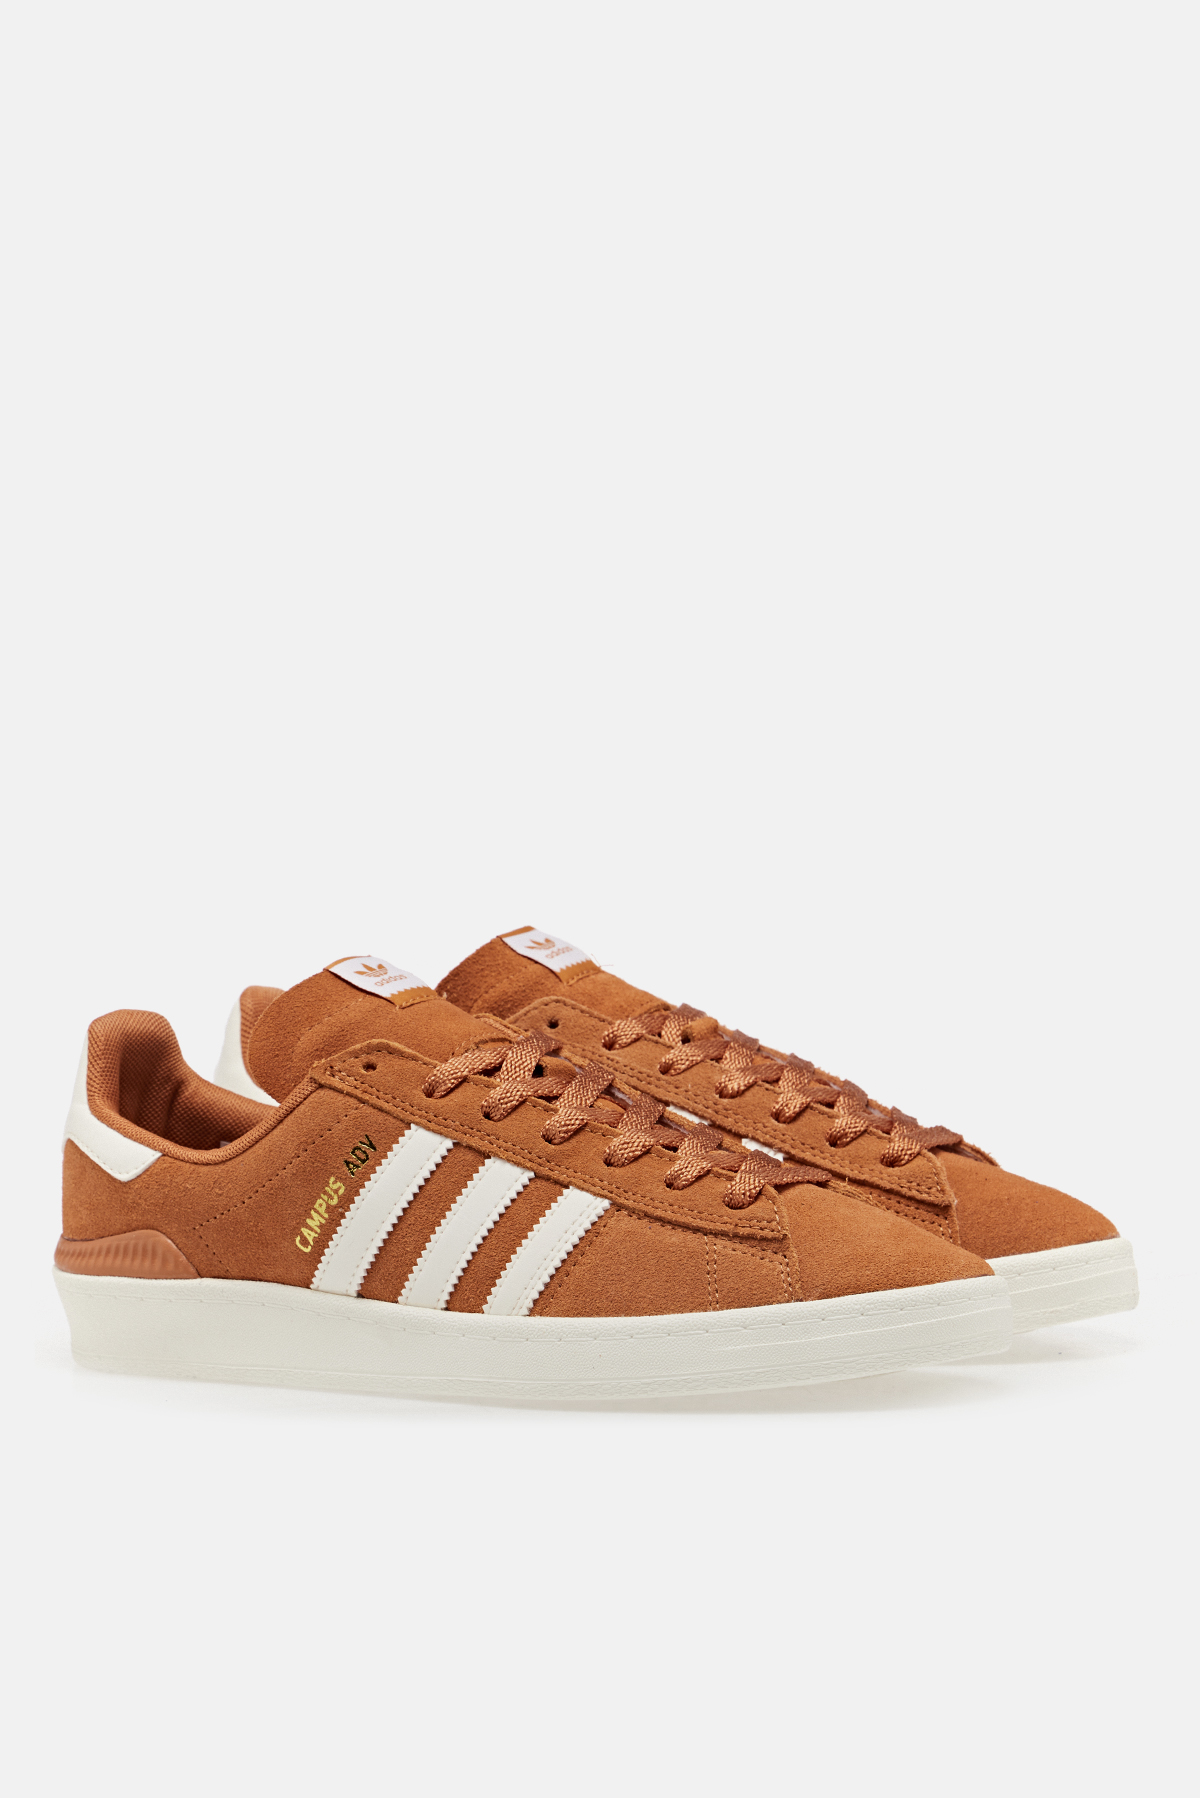 Adidas Campus ADV Shoes available from Priory